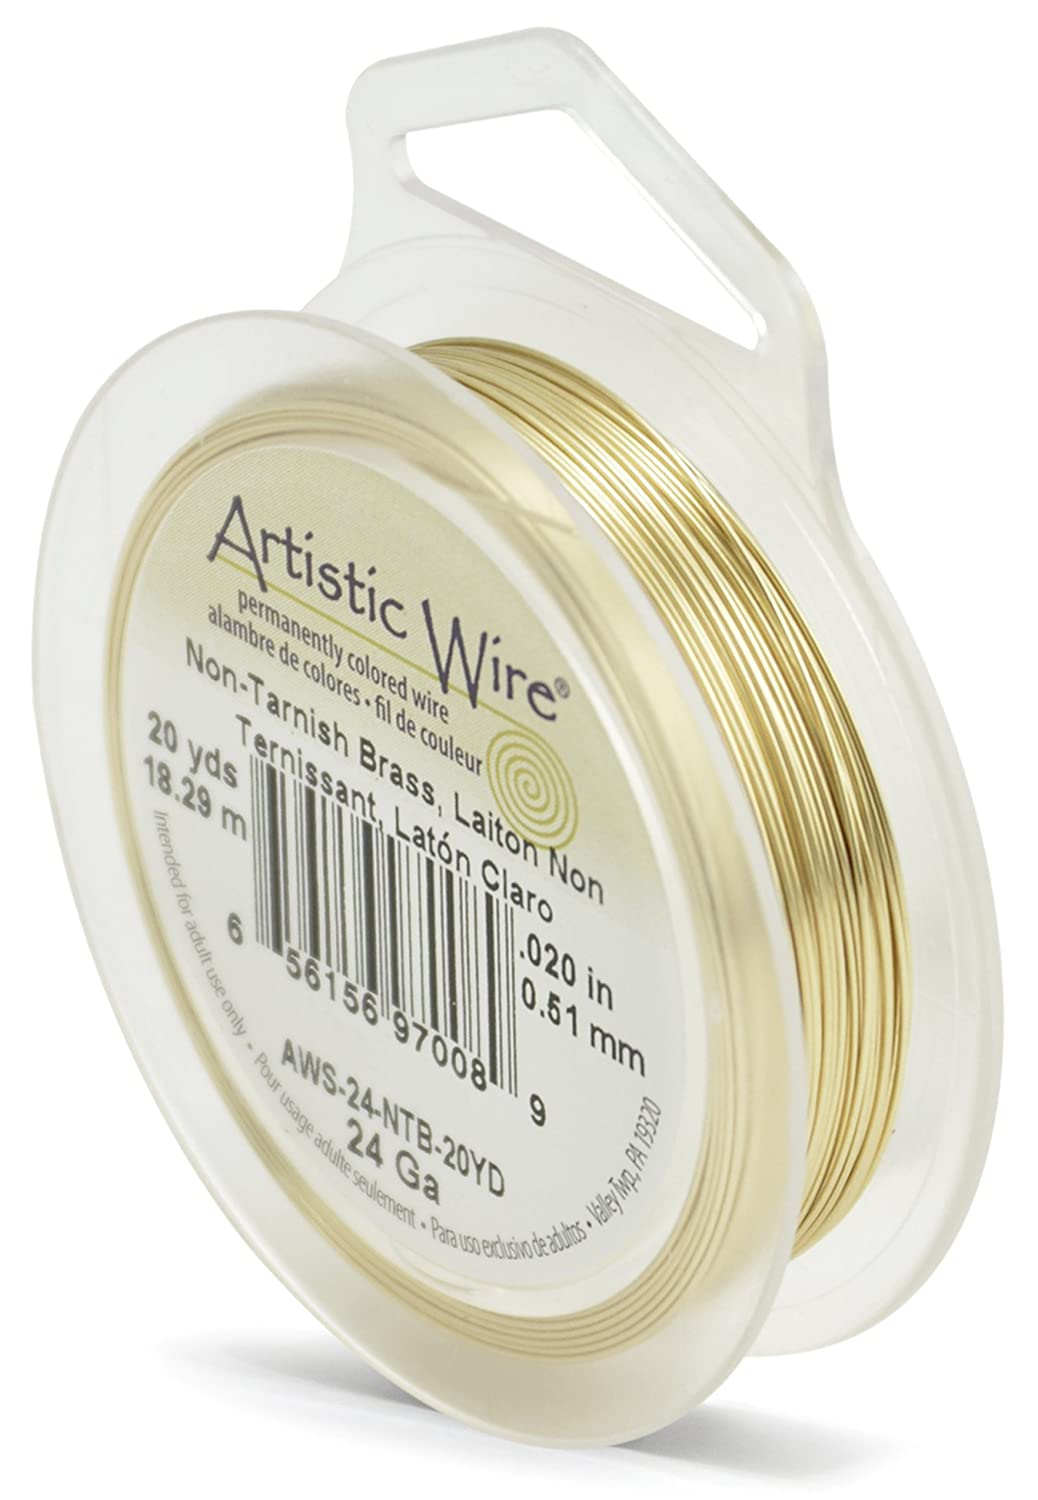 Artistic Wire 24-Gauge Non-Tarnish Brass Wire, 20-Yards Beadalon AWS-24-NTB-20YD